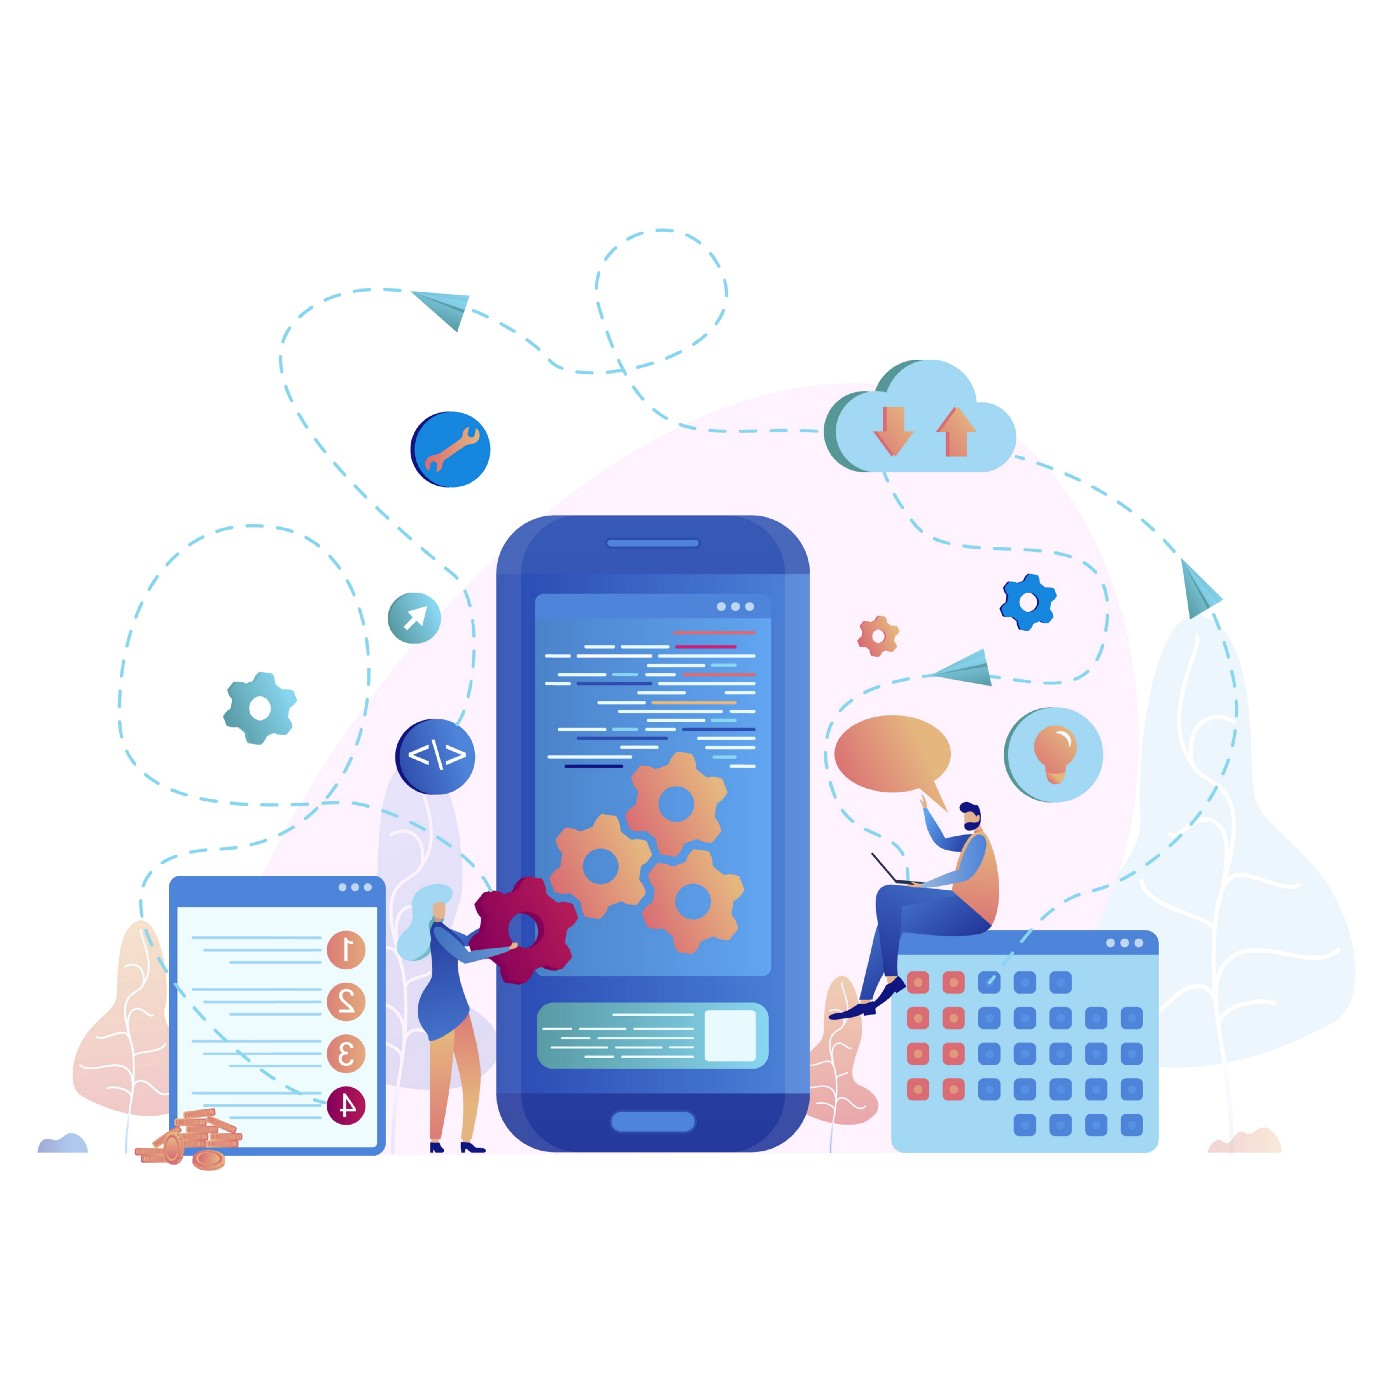 Building a custom app for your business